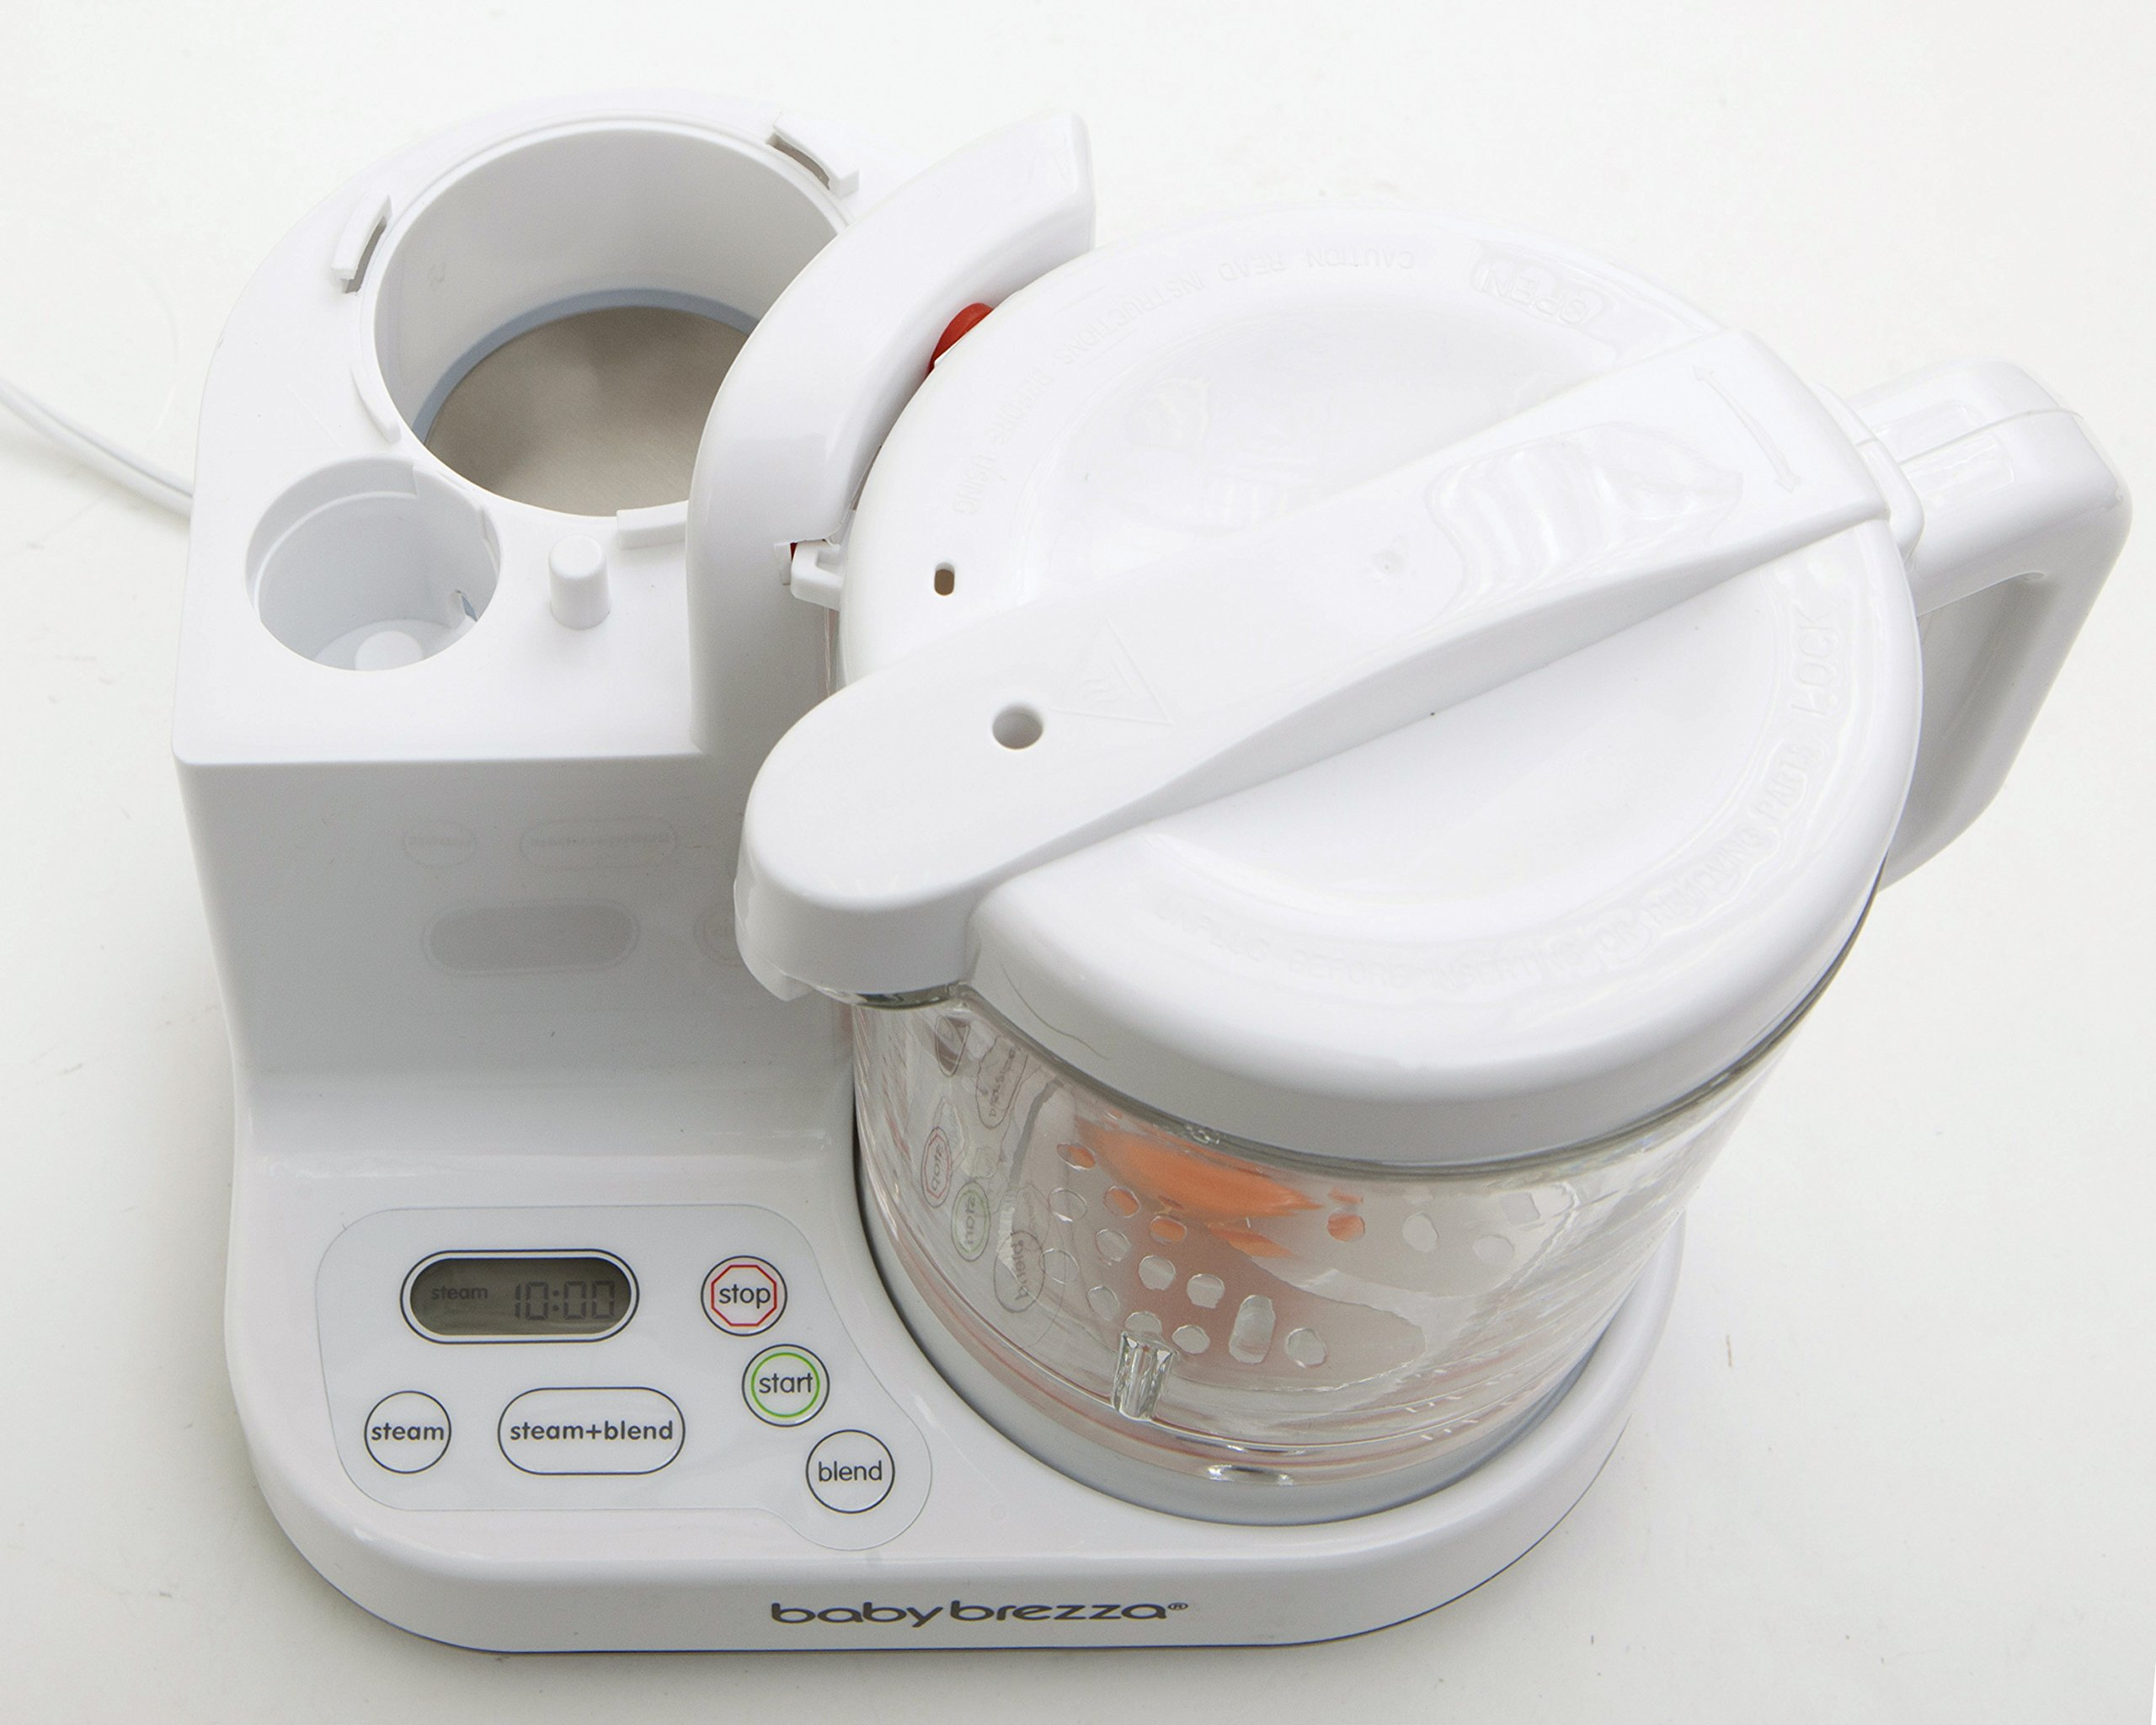 Baby Brezza Glass Baby Food Maker – Cooker and Blender to Steam and Puree Baby Food for Pouches in Glass Bowl - Make Organic Food for Infants and Toddlers – 4 Cup Capacity by Baby Brezza (Image #5)